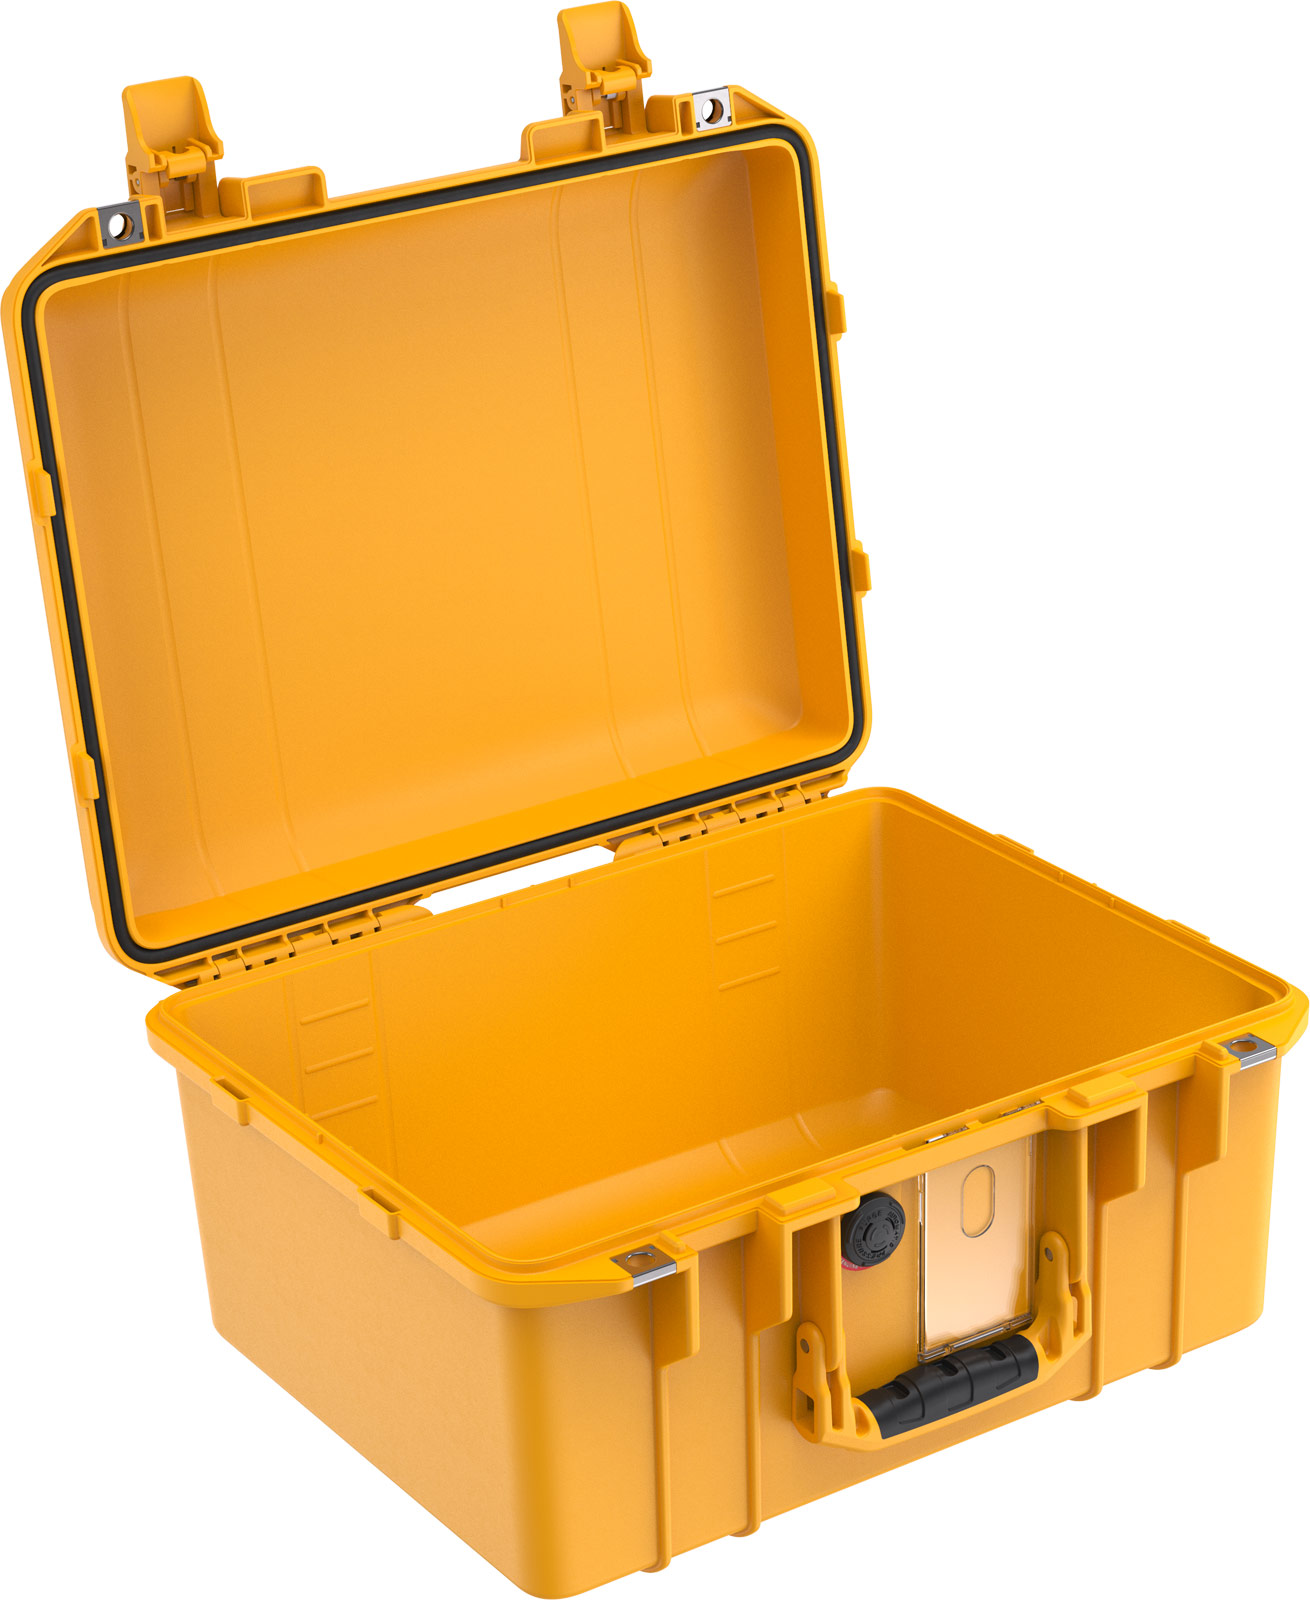 buy pelican air 1507 shop yellow luggage case